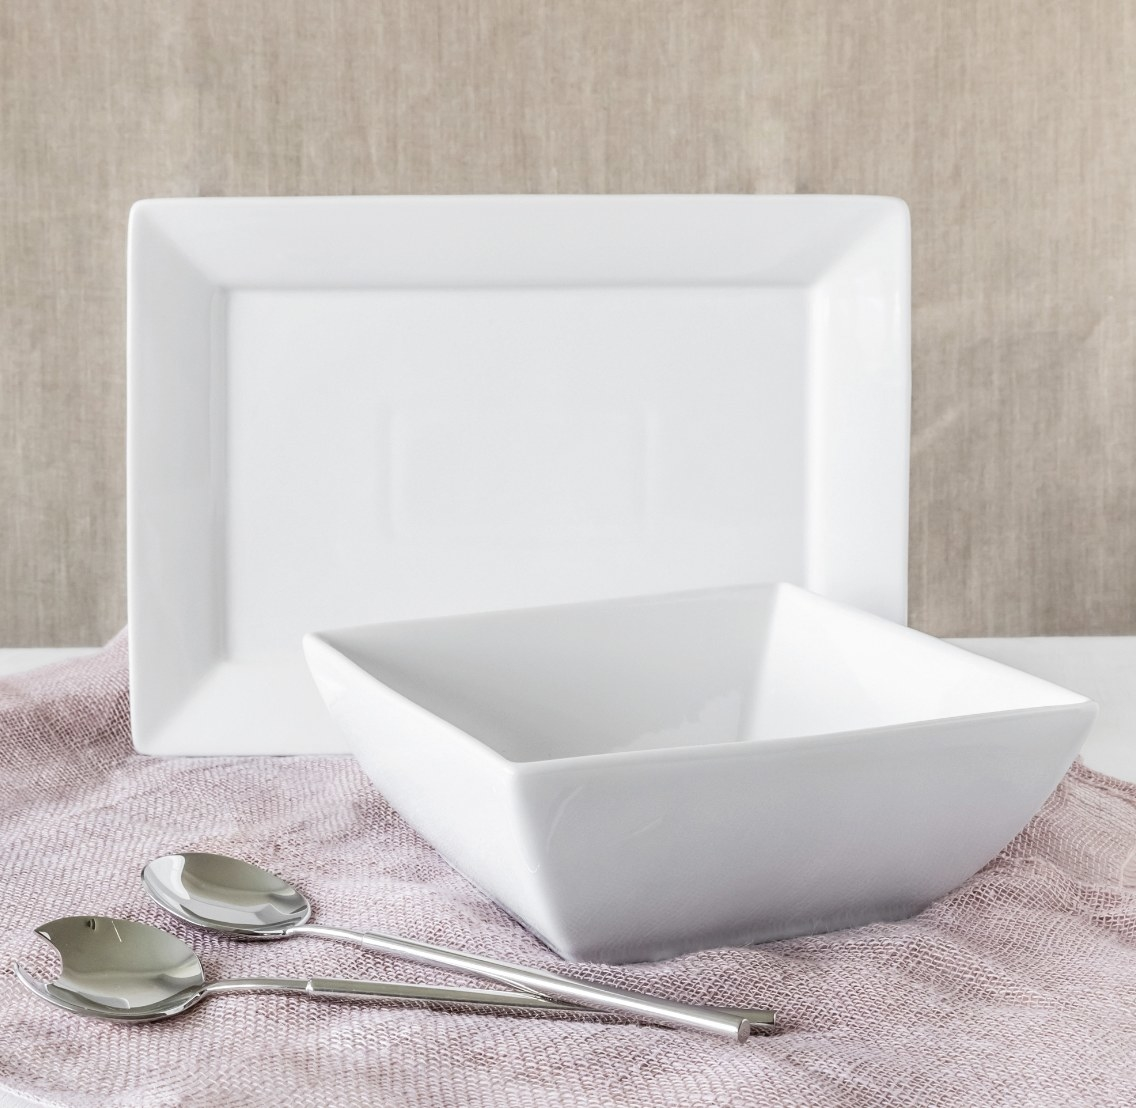 The white square bowl and plate with two silver spoons